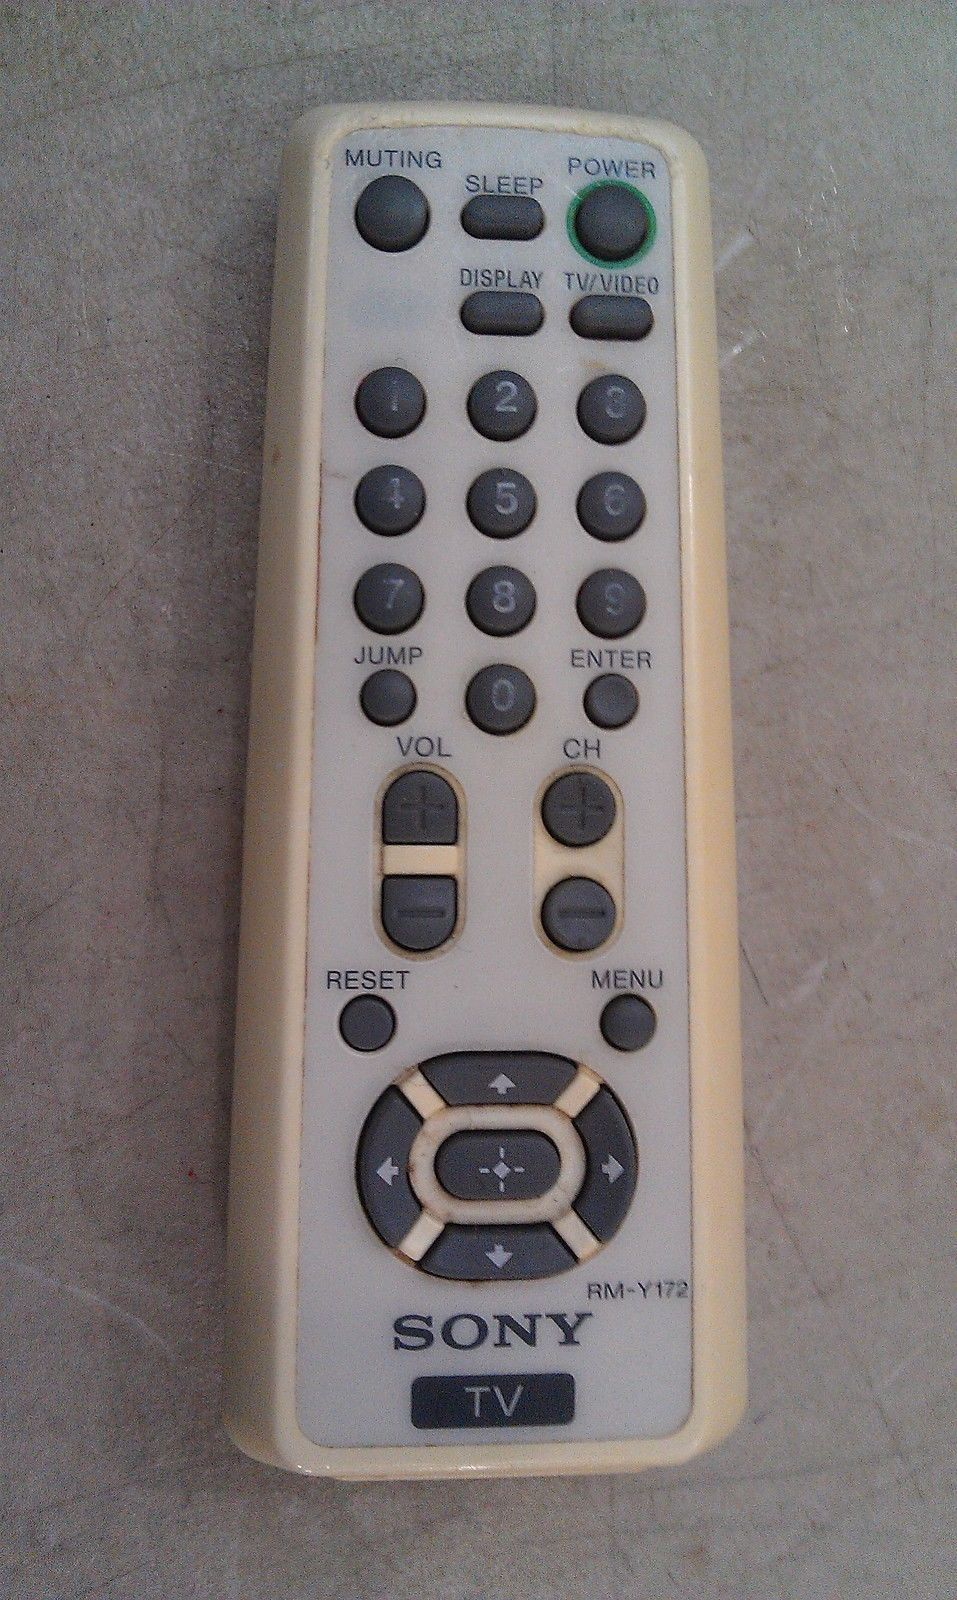 Primary image for 8T52 SONY RM-Y172 REMOTE CONTROL FOR TV, LOOSE BATTERY DOOR, FAIR CONDITION